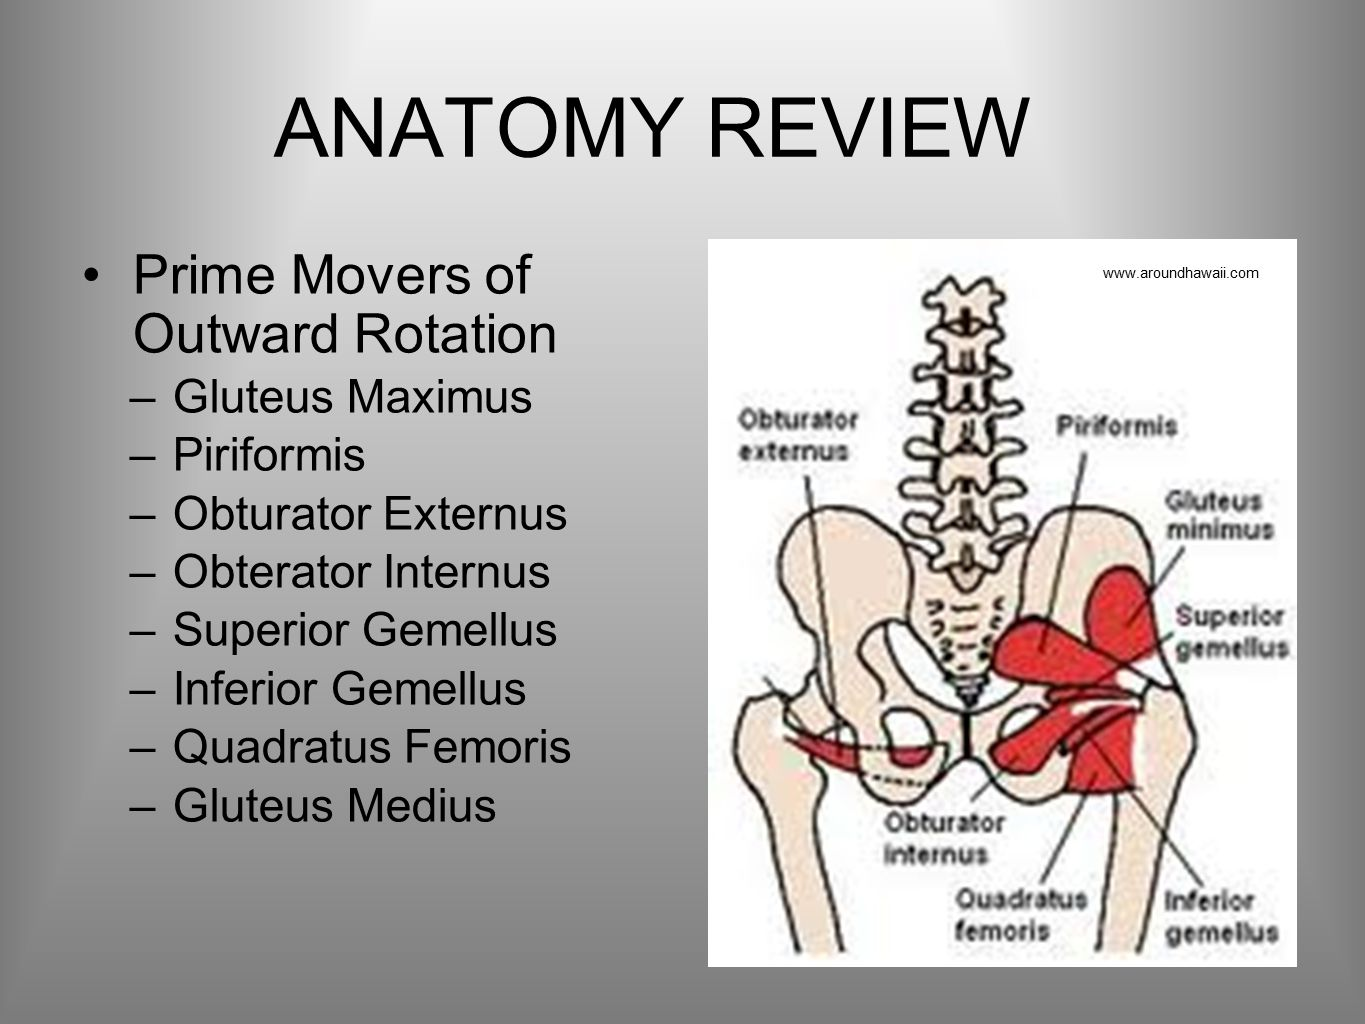 ANATOMY REVIEW Prime Movers of Outward Rotation –Gluteus Maximus –Piriformis –Obturator Externus –Obterator Internus –Superior Gemellus –Inferior Gemellus –Quadratus Femoris –Gluteus Medius www.aroundhawaii.com